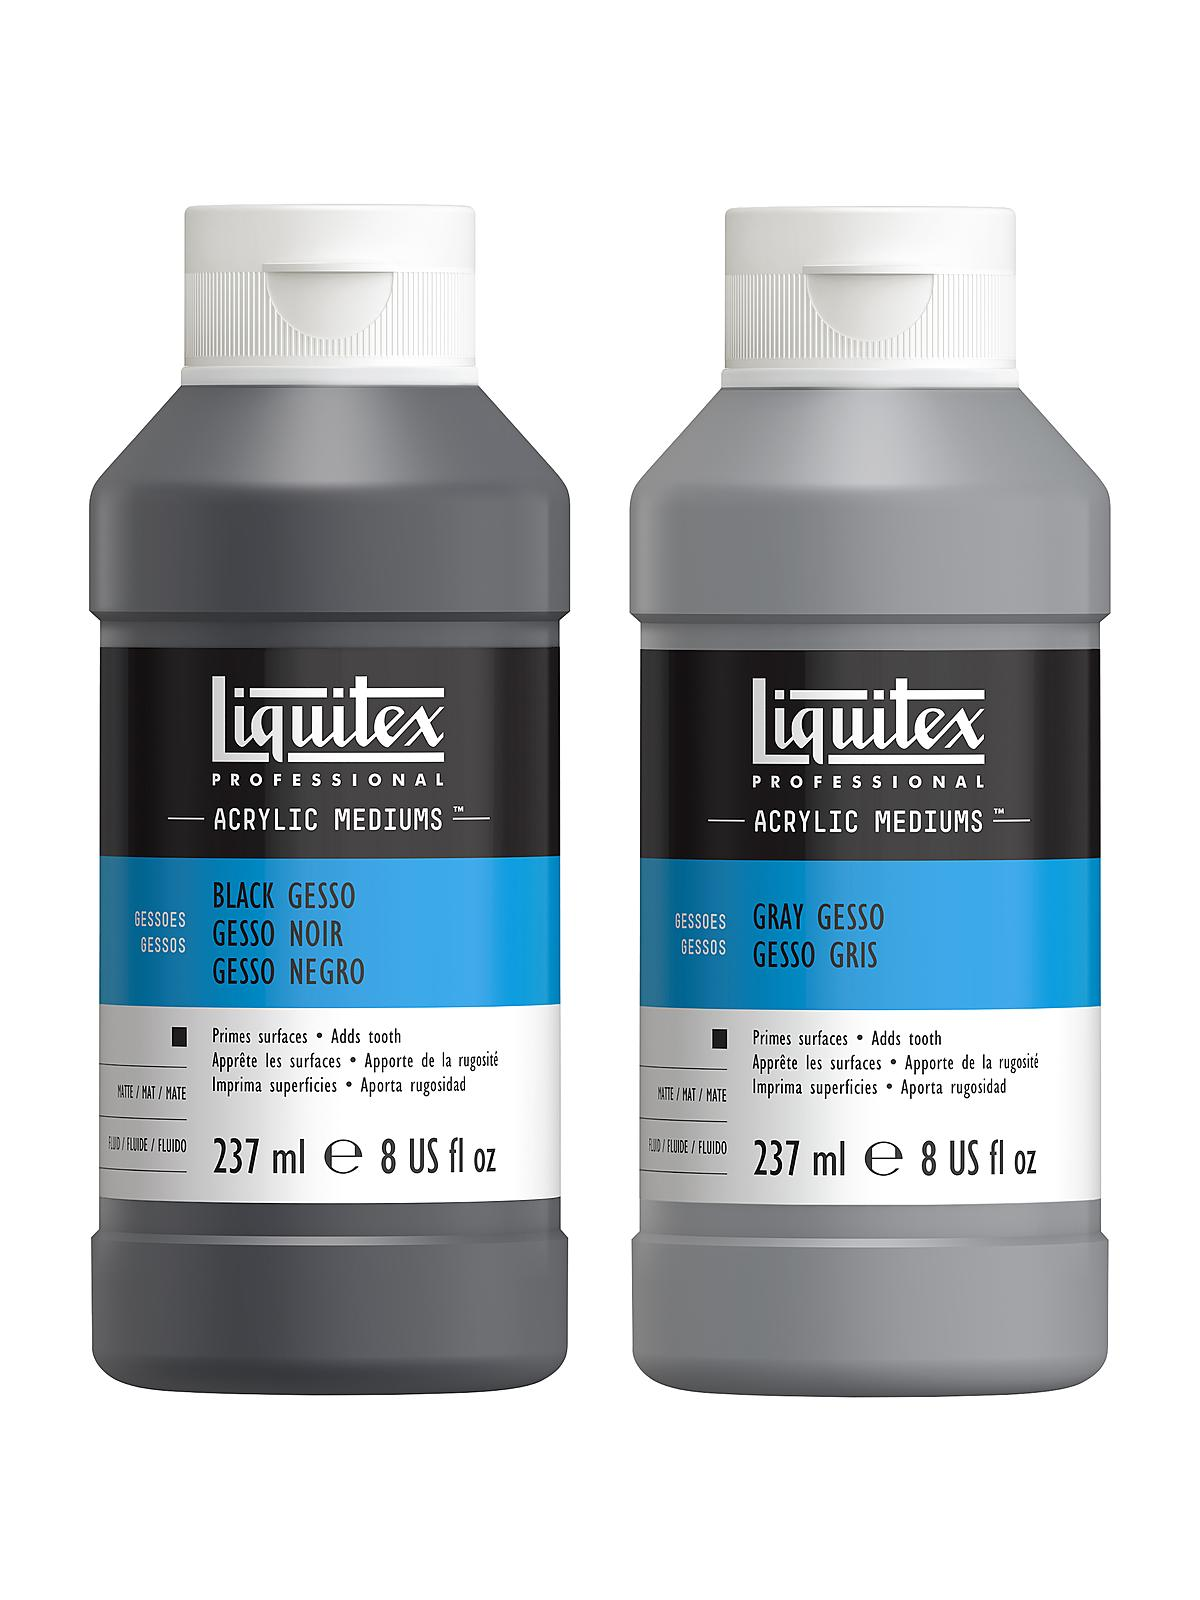 Liquitex Acrylic Colored Gesso Misterart Com